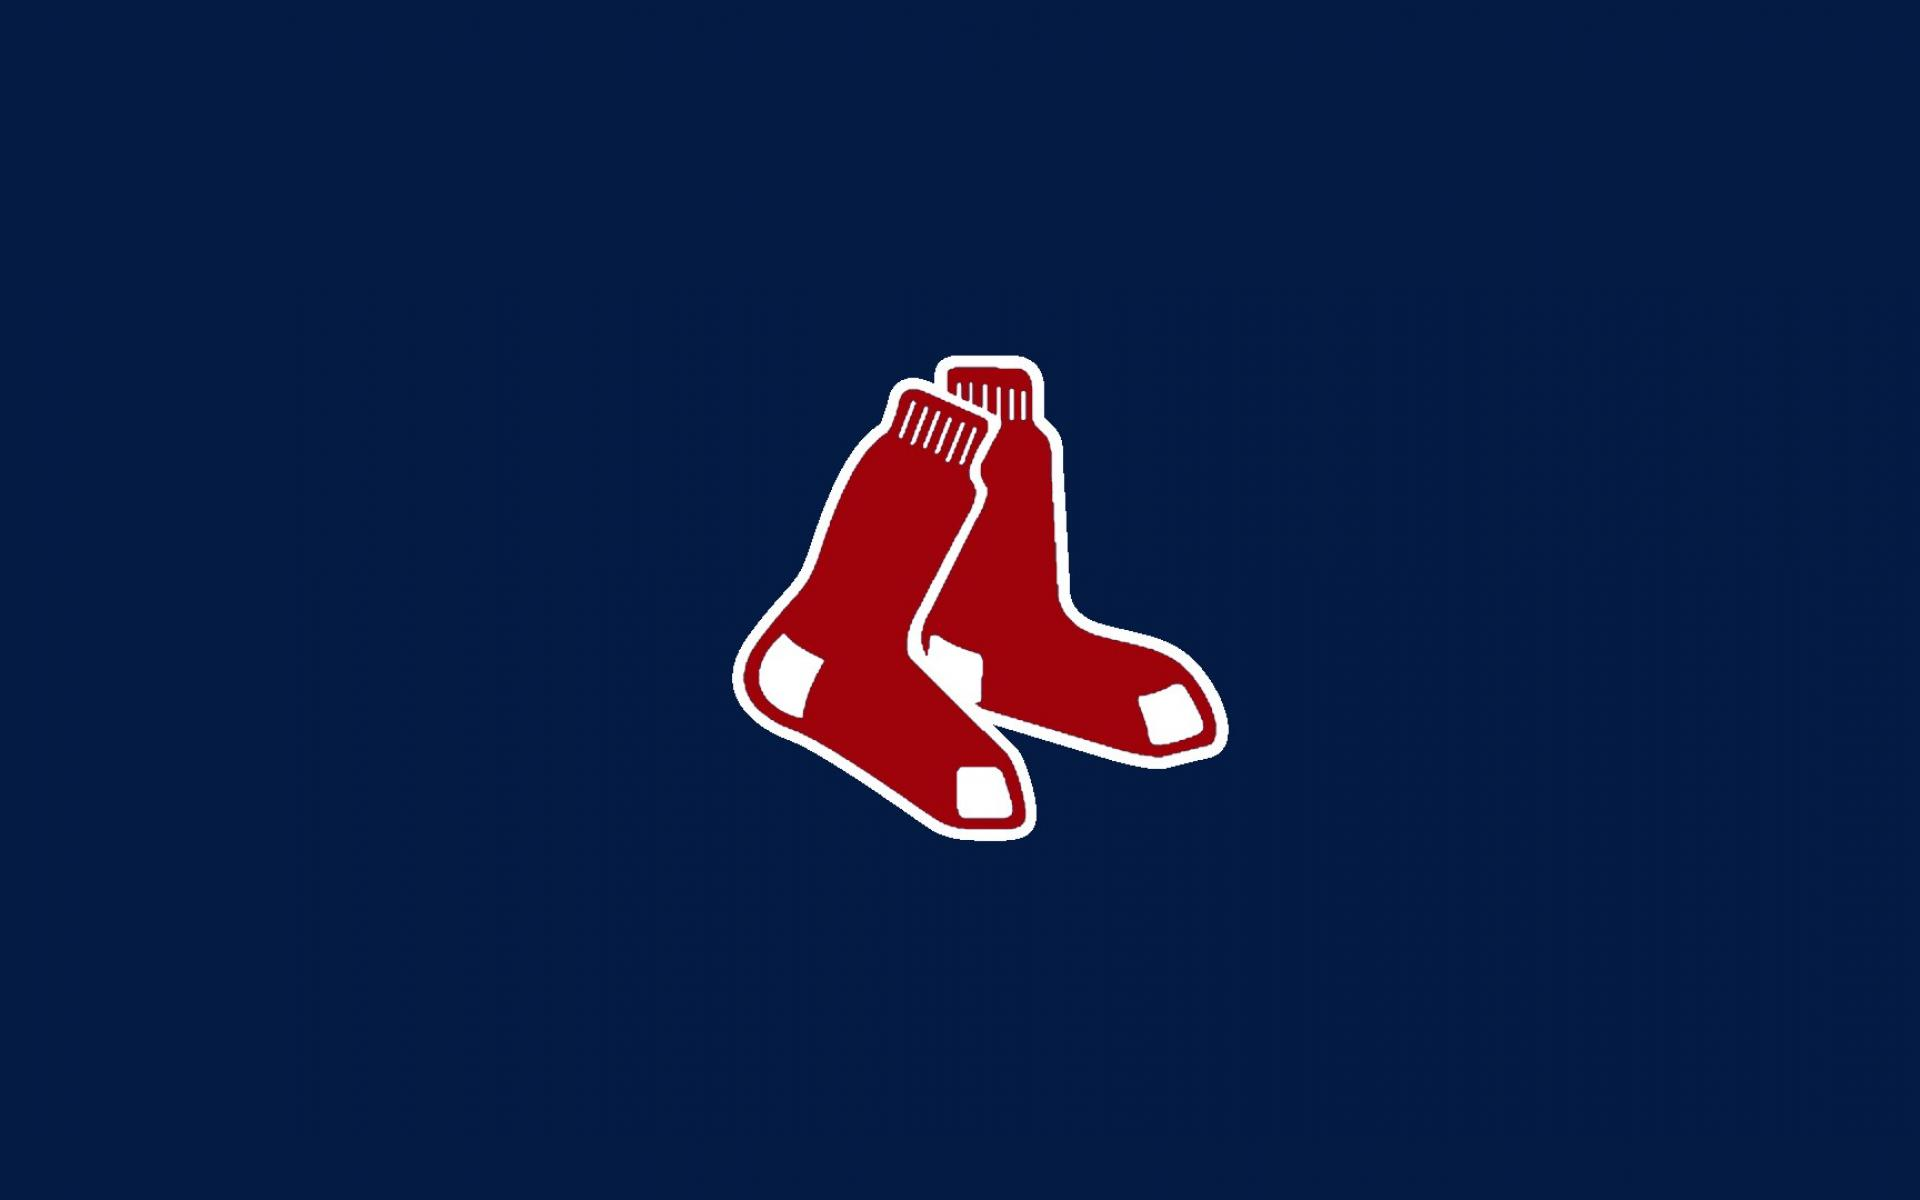 Boston red sox logo wallpaper 166532 1920x1200